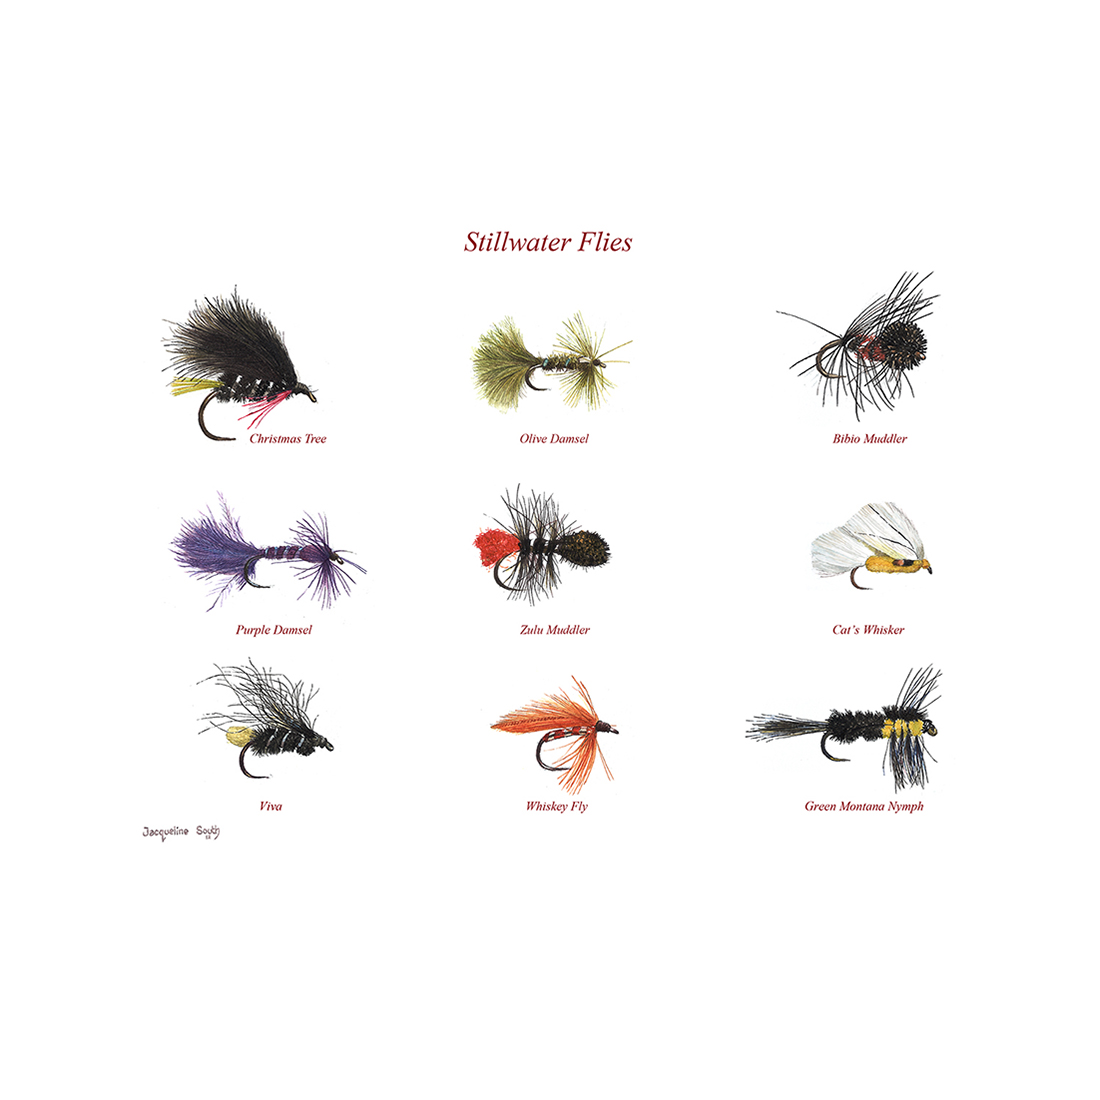 Stillwater Flies